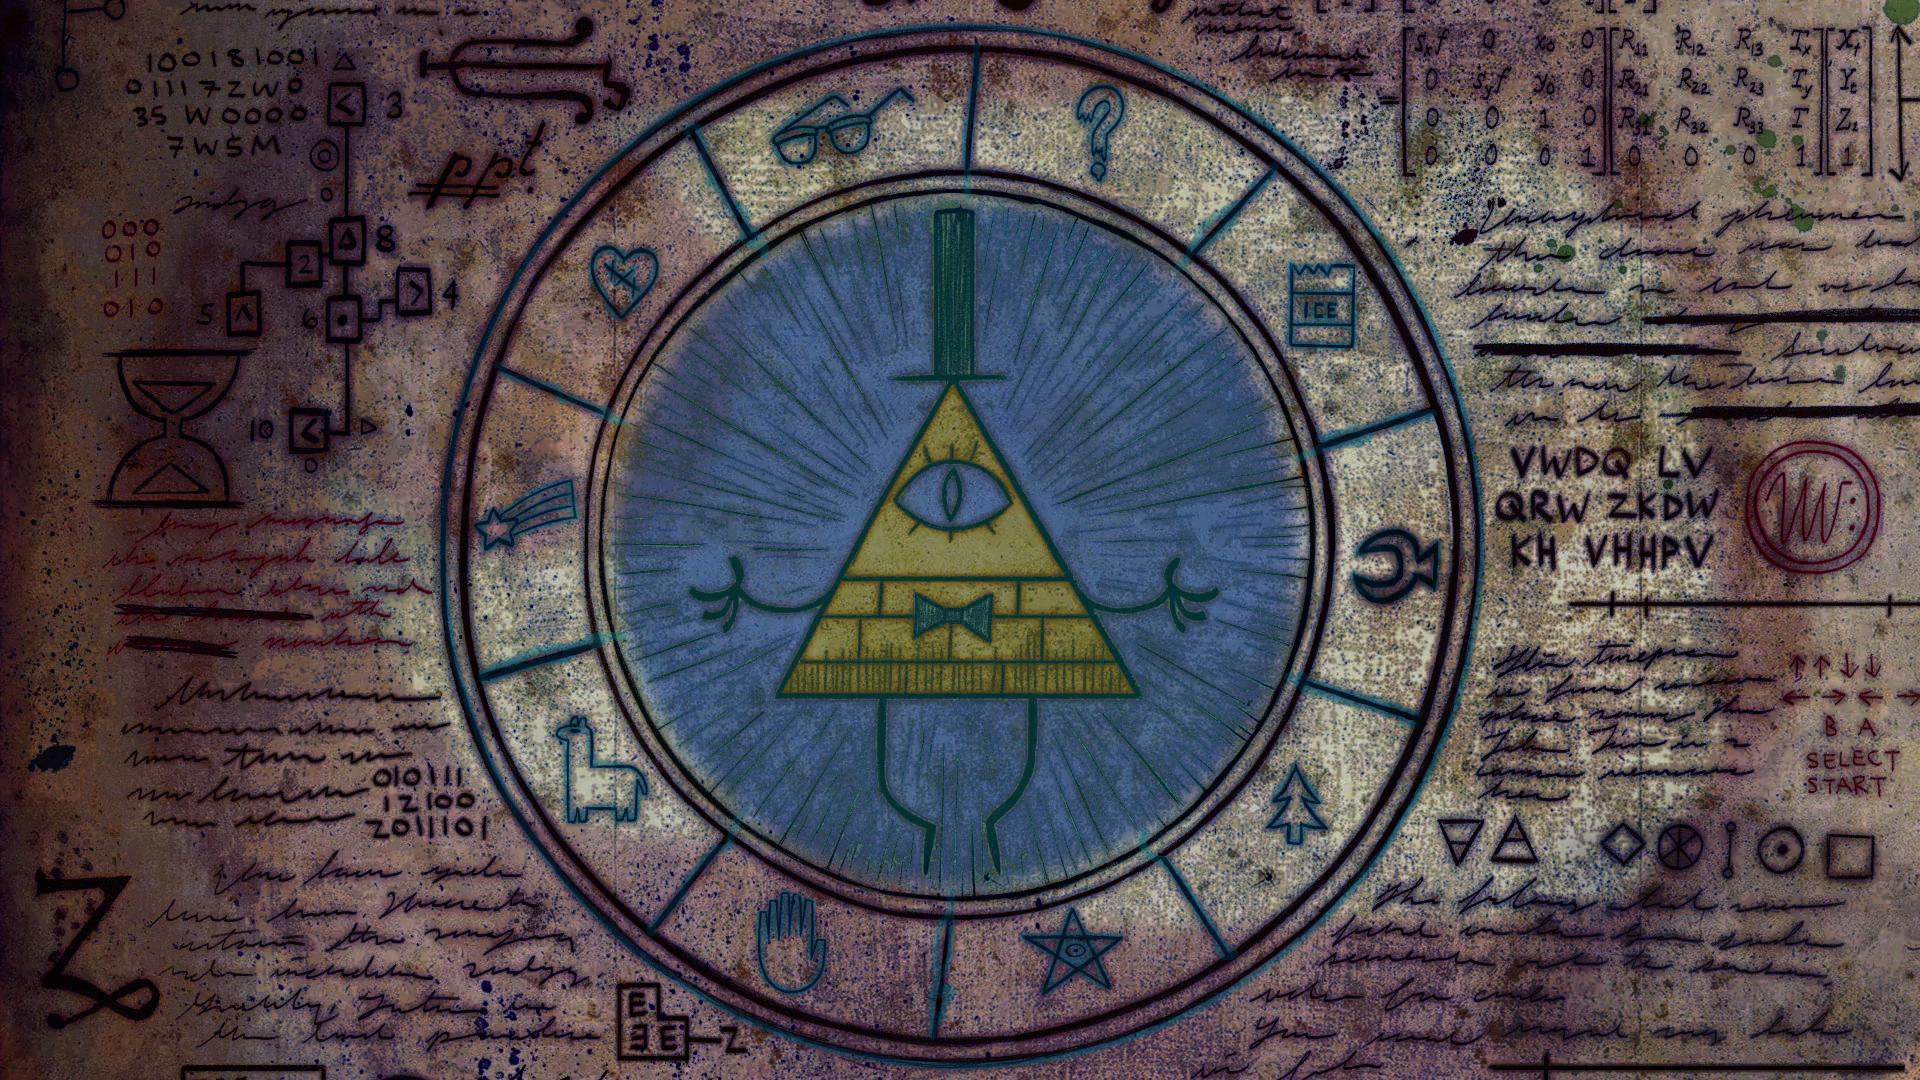 Gravity Falls Bill Cipher Wallpaper Hd Gravity Falls Hd Wallpapers Wallpaper Cave